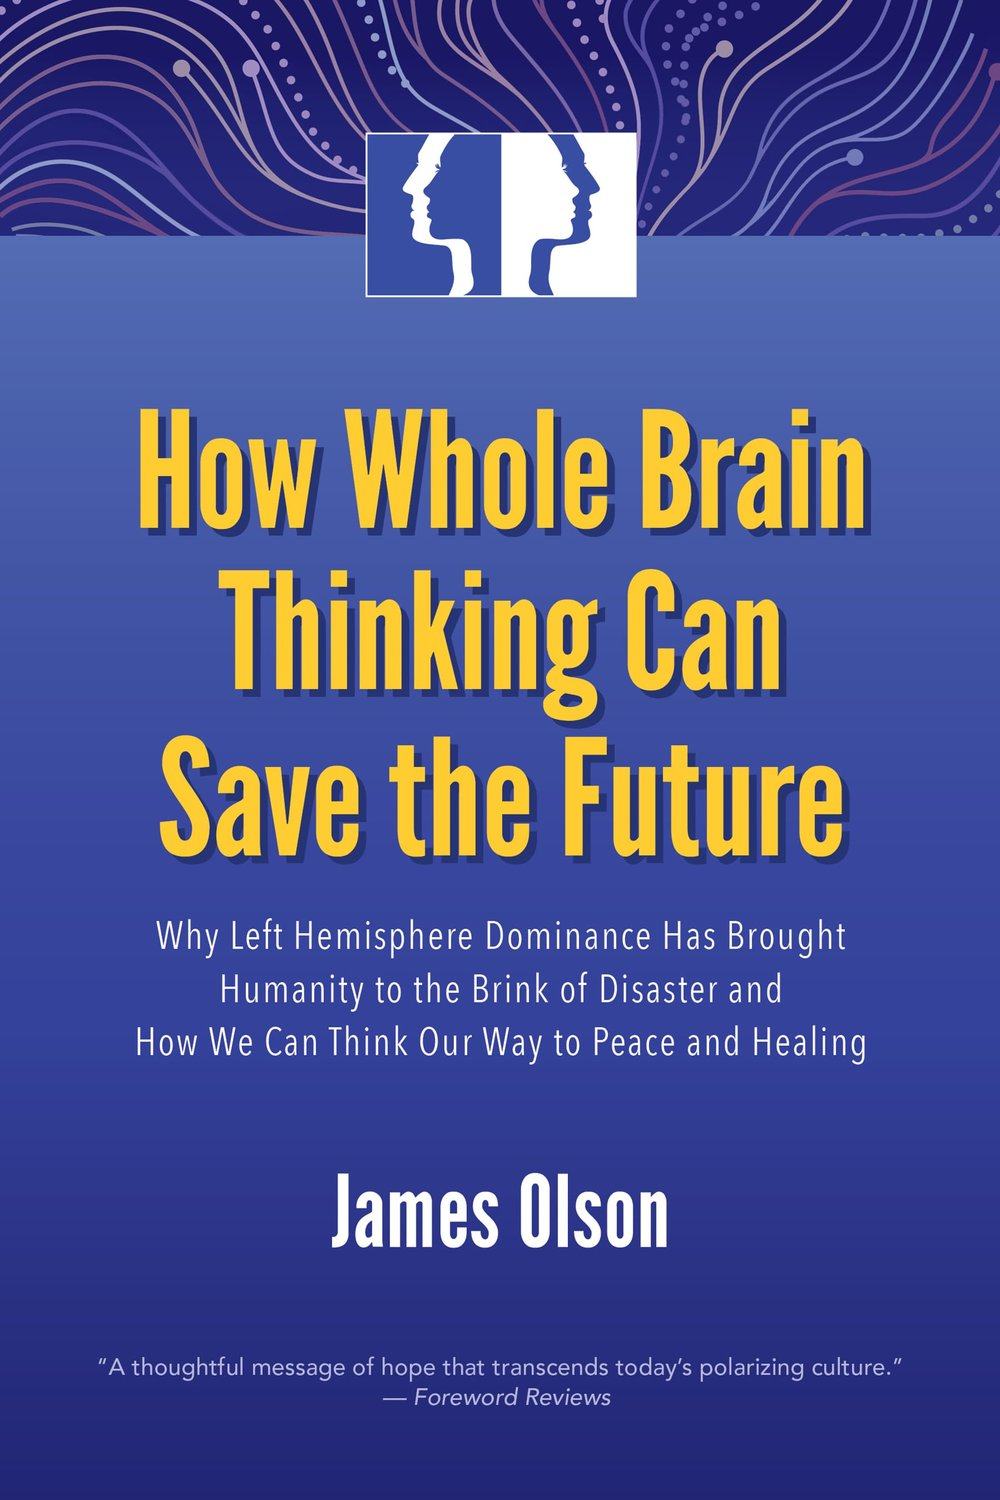 How Whole Brain Thinking Can Save The Future Cover Art- James Olson